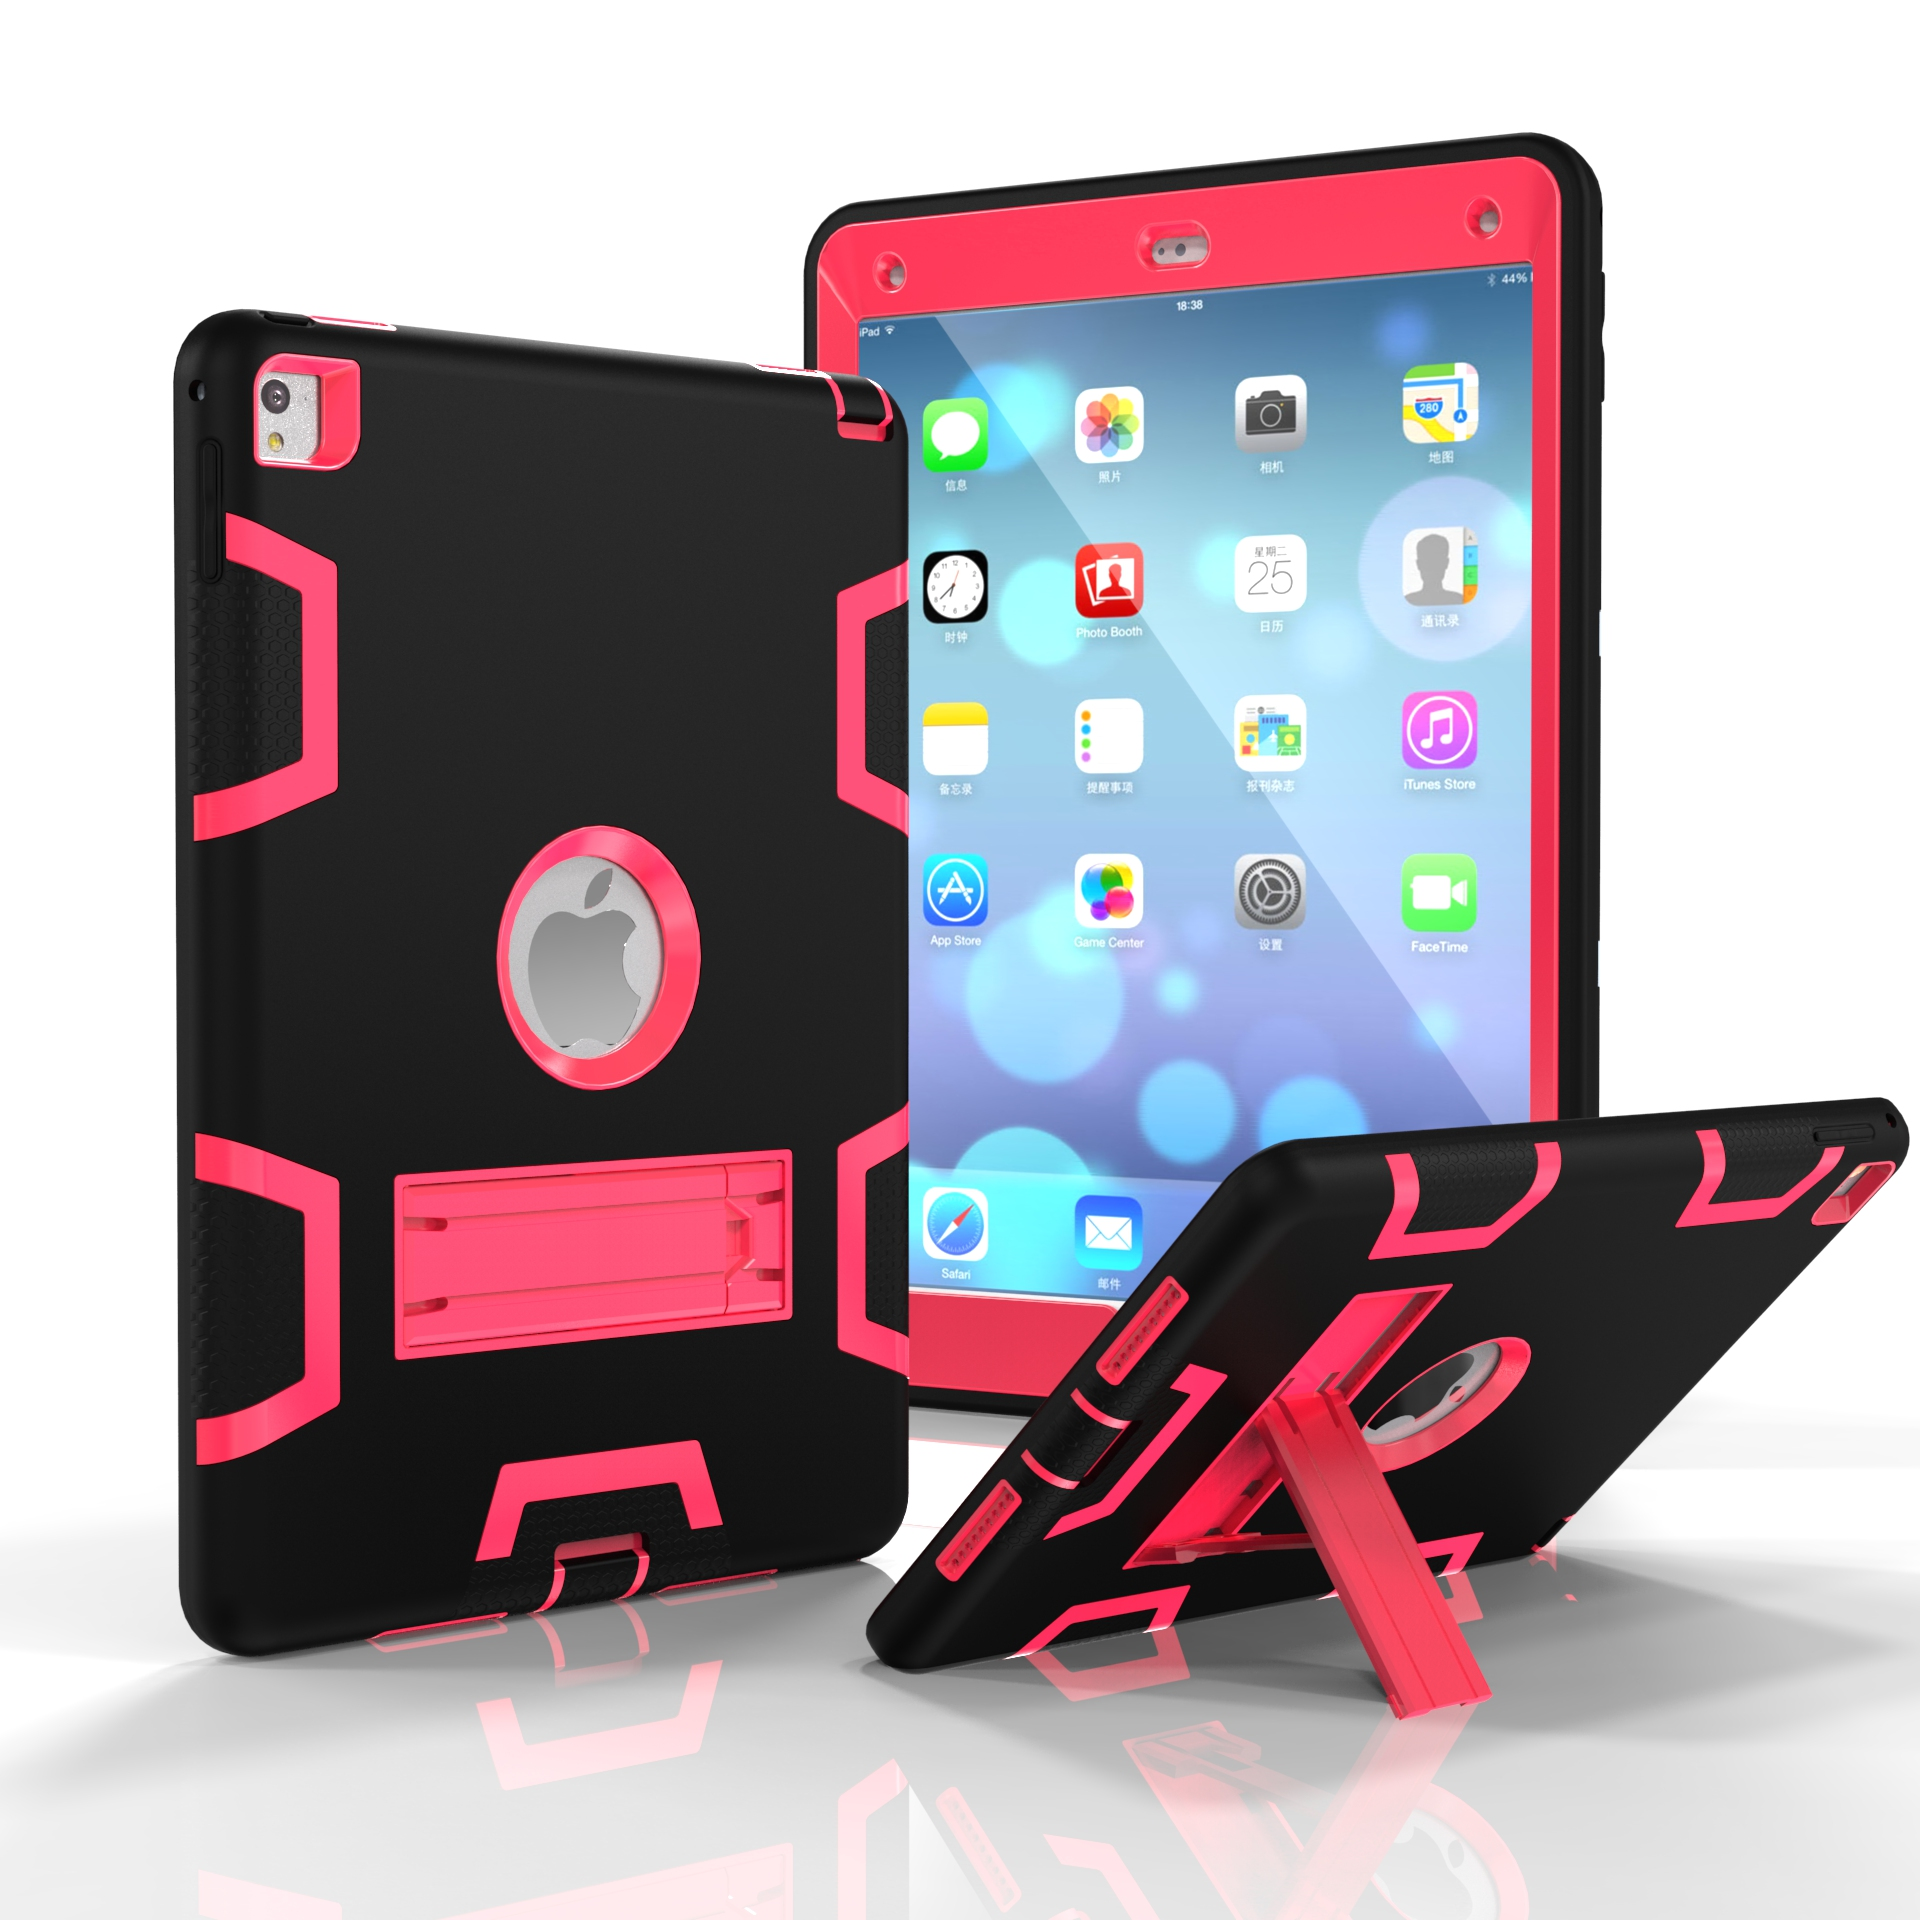 For iPad air2/iPad 6/iPad pro 9.7 2016 PC+ Silicone Hit Color Armor Case Tri-proof Shockproof Dustproof Anti-fall Protective Cover  Black + rose red